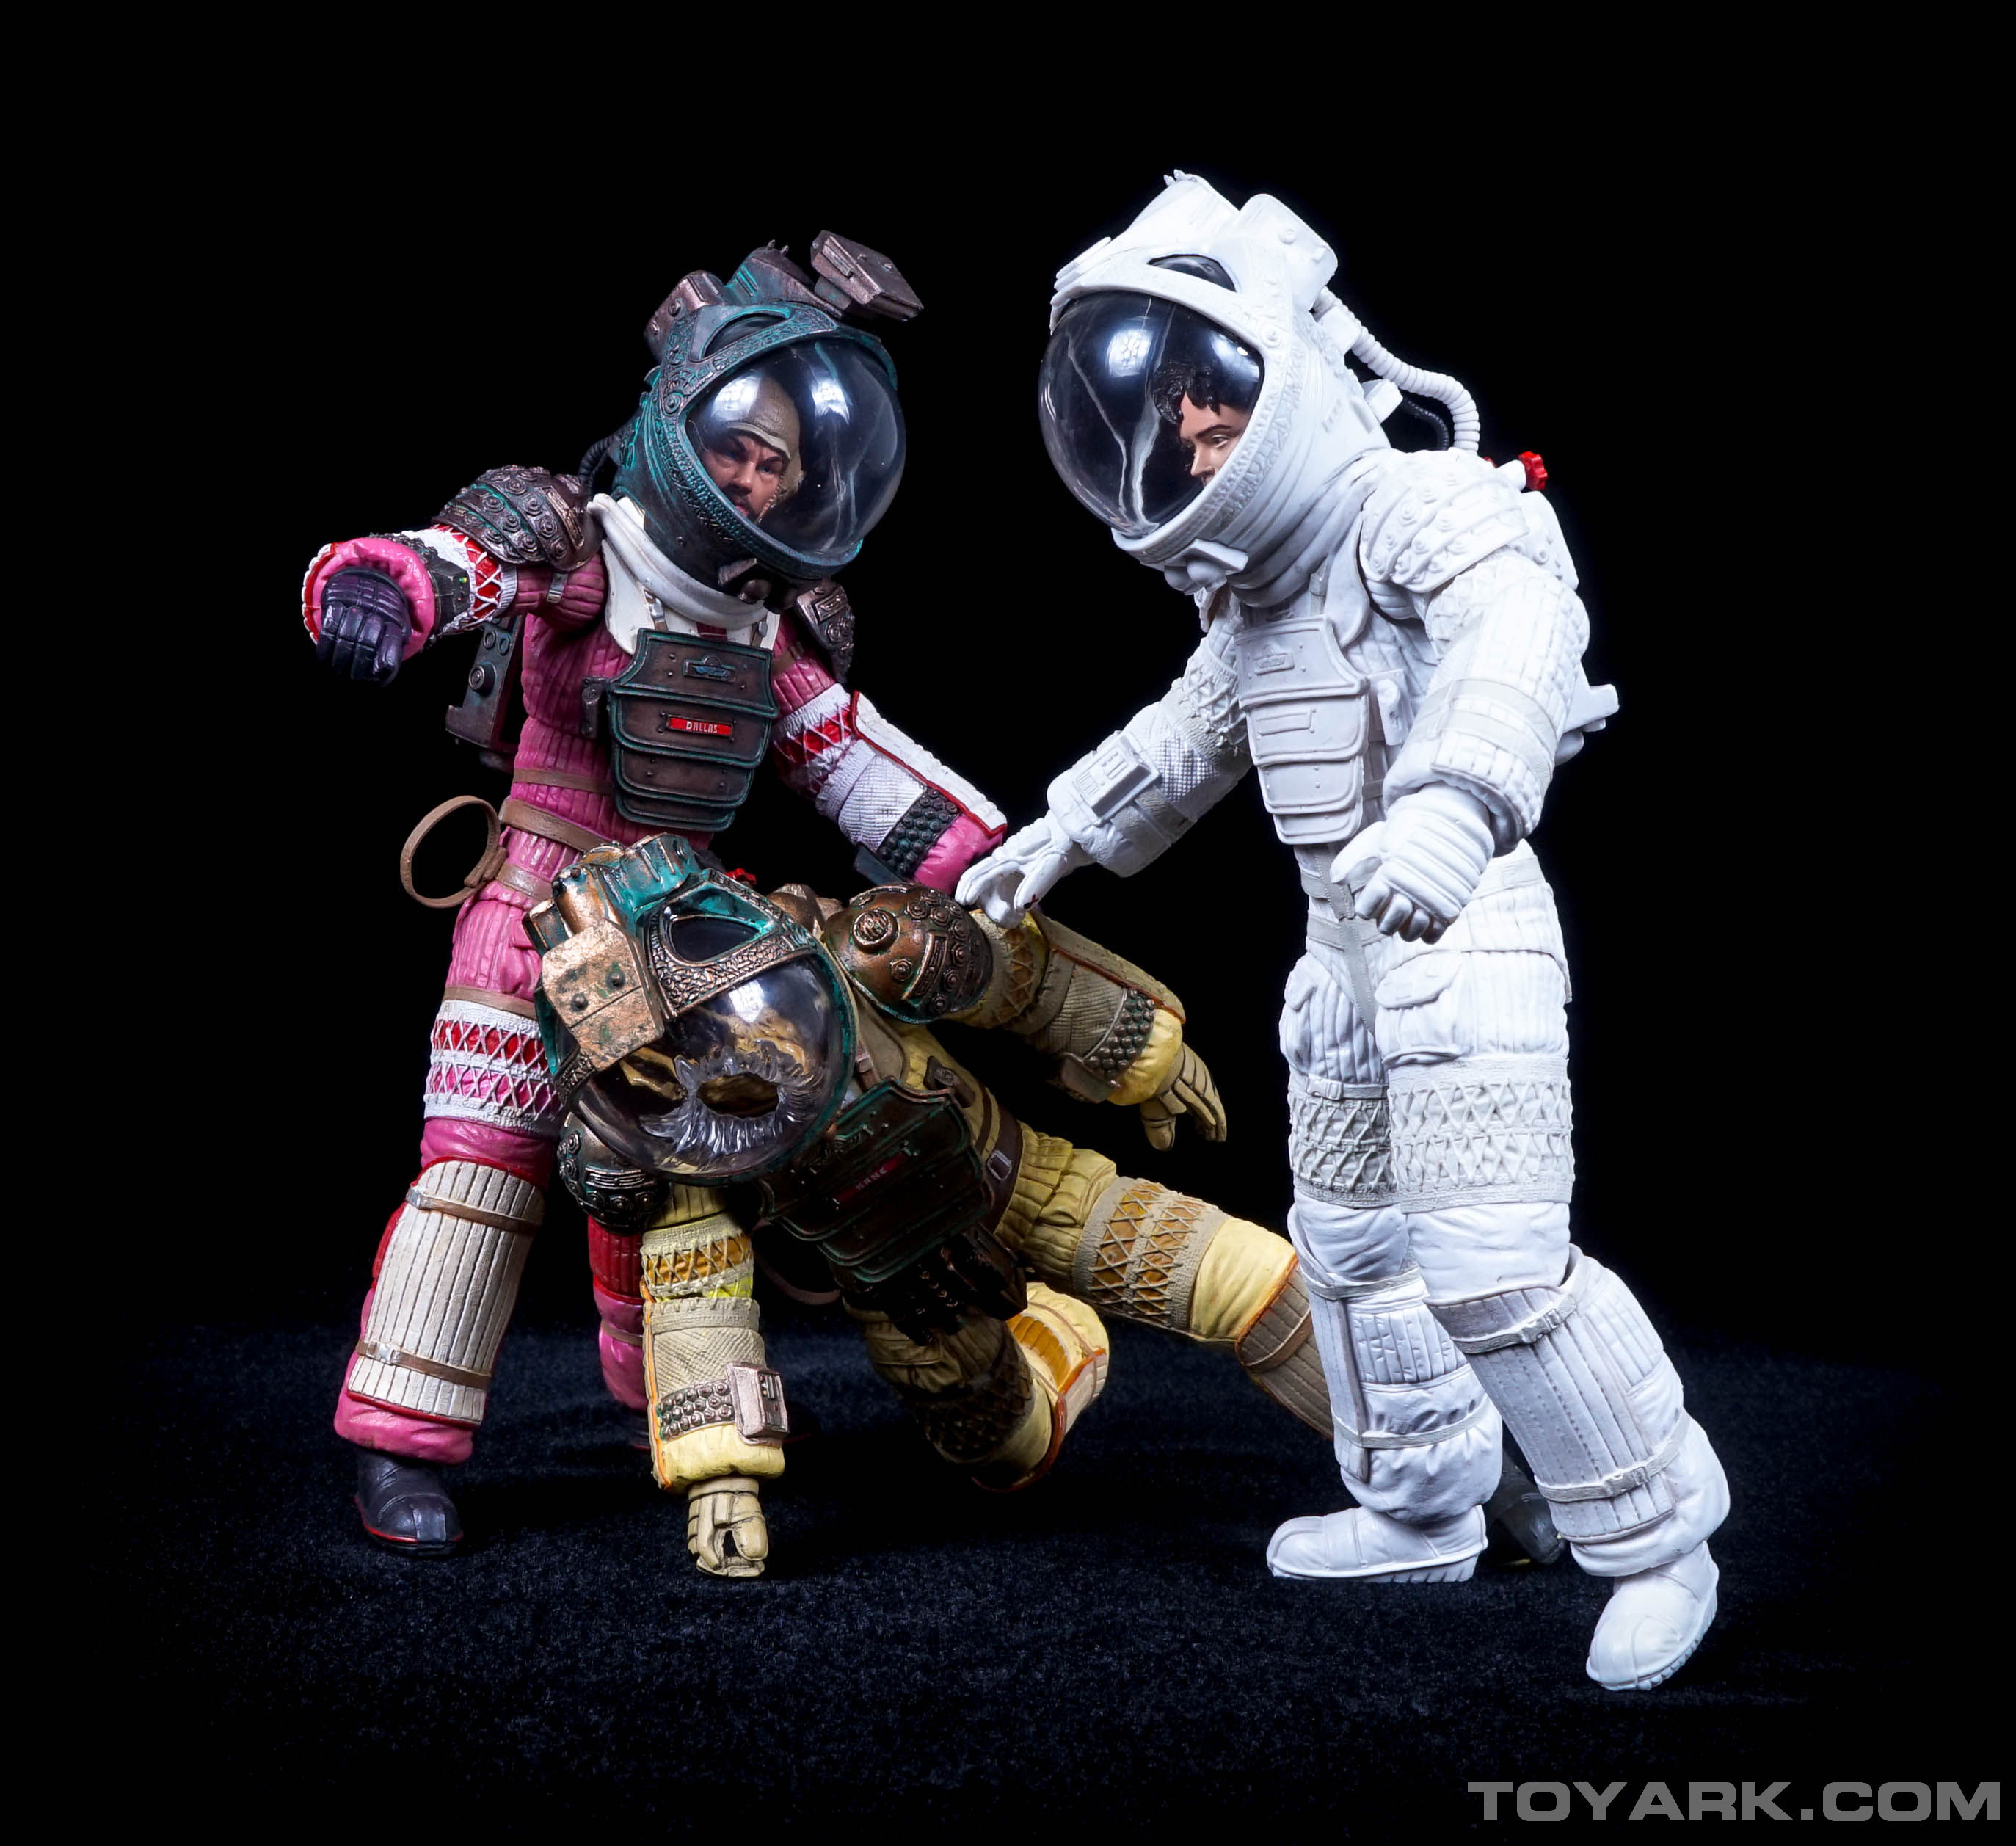 http://news.toyark.com/wp-content/uploads/sites/4/2015/06/Aliens-Series-4-by-NECA-085.jpg